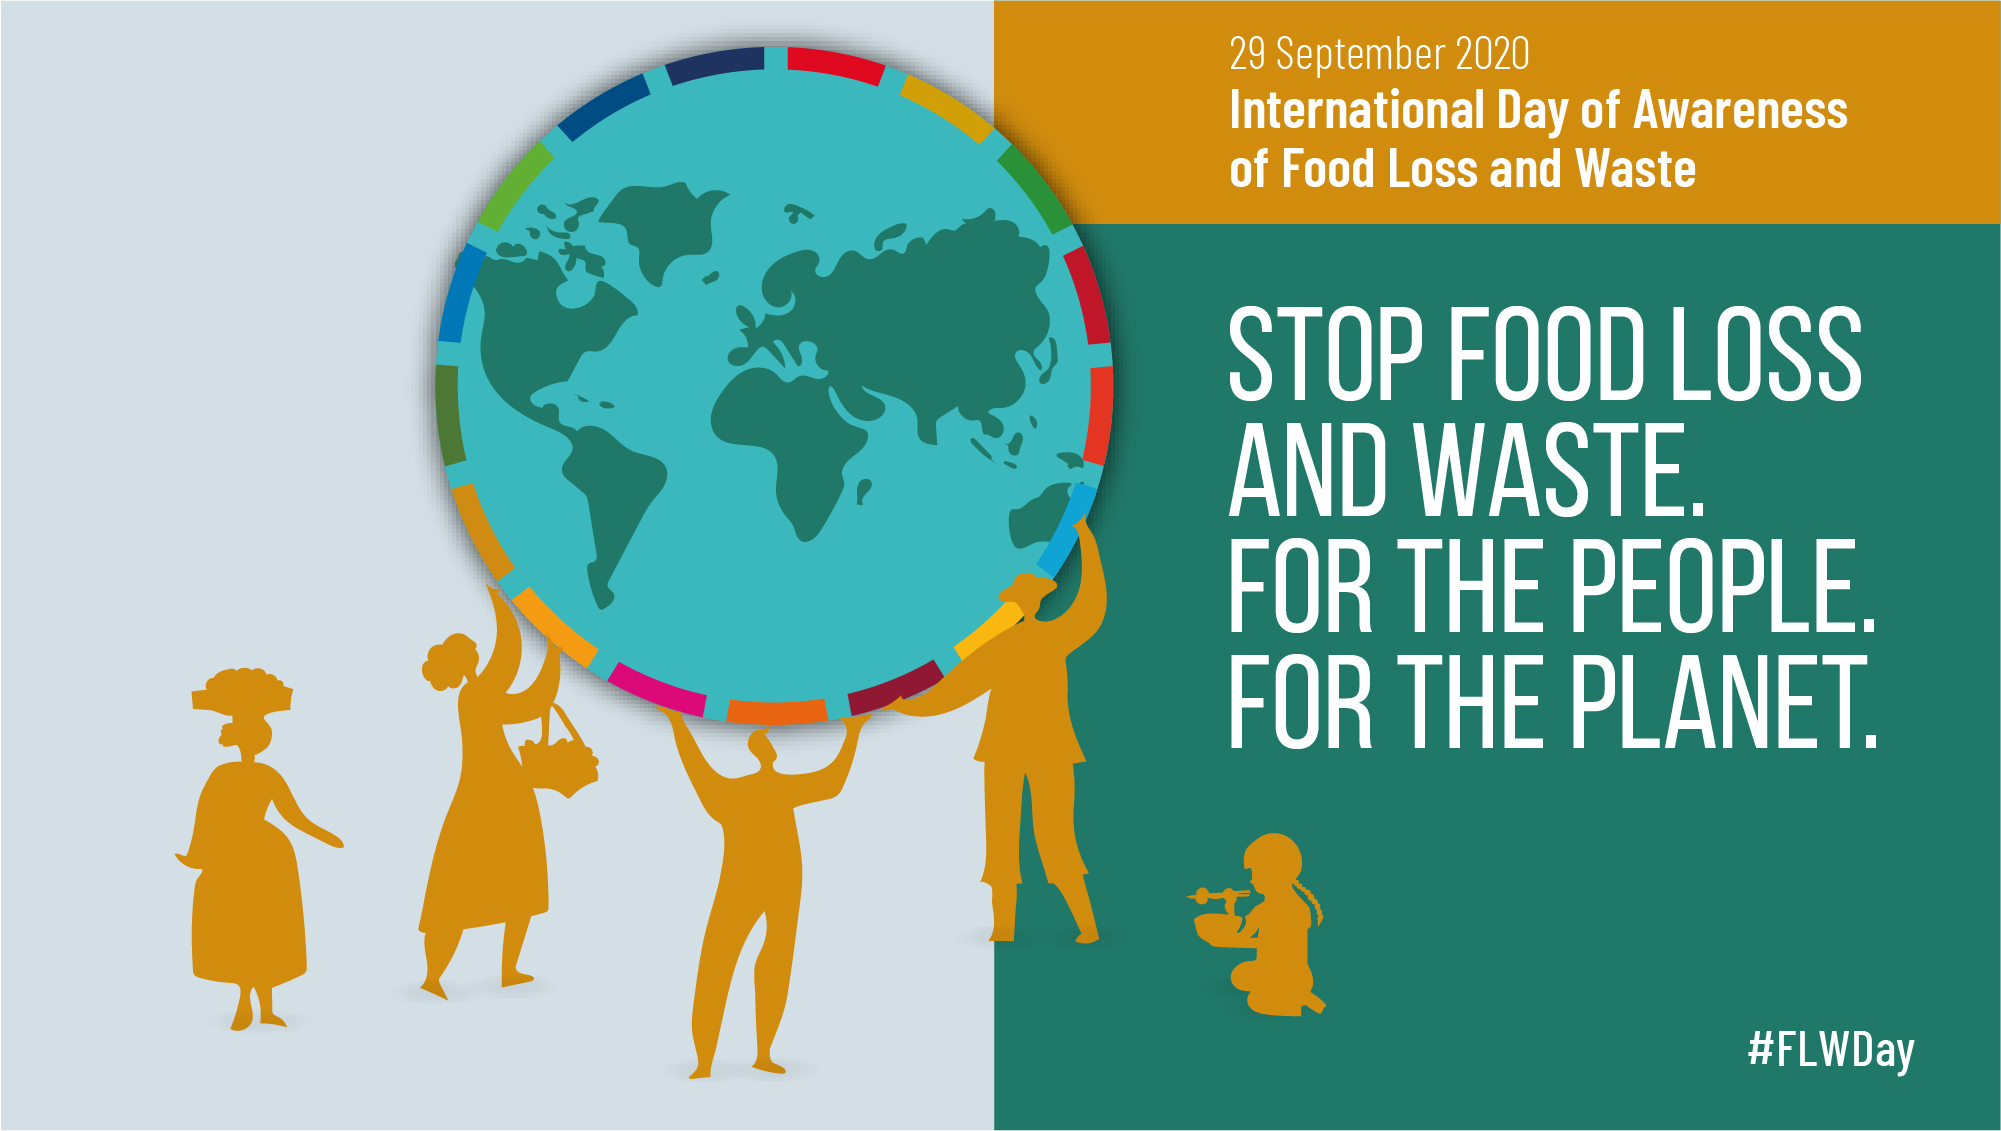 September 29, 2020 - International Day of Awareness of Food Loss and Waste